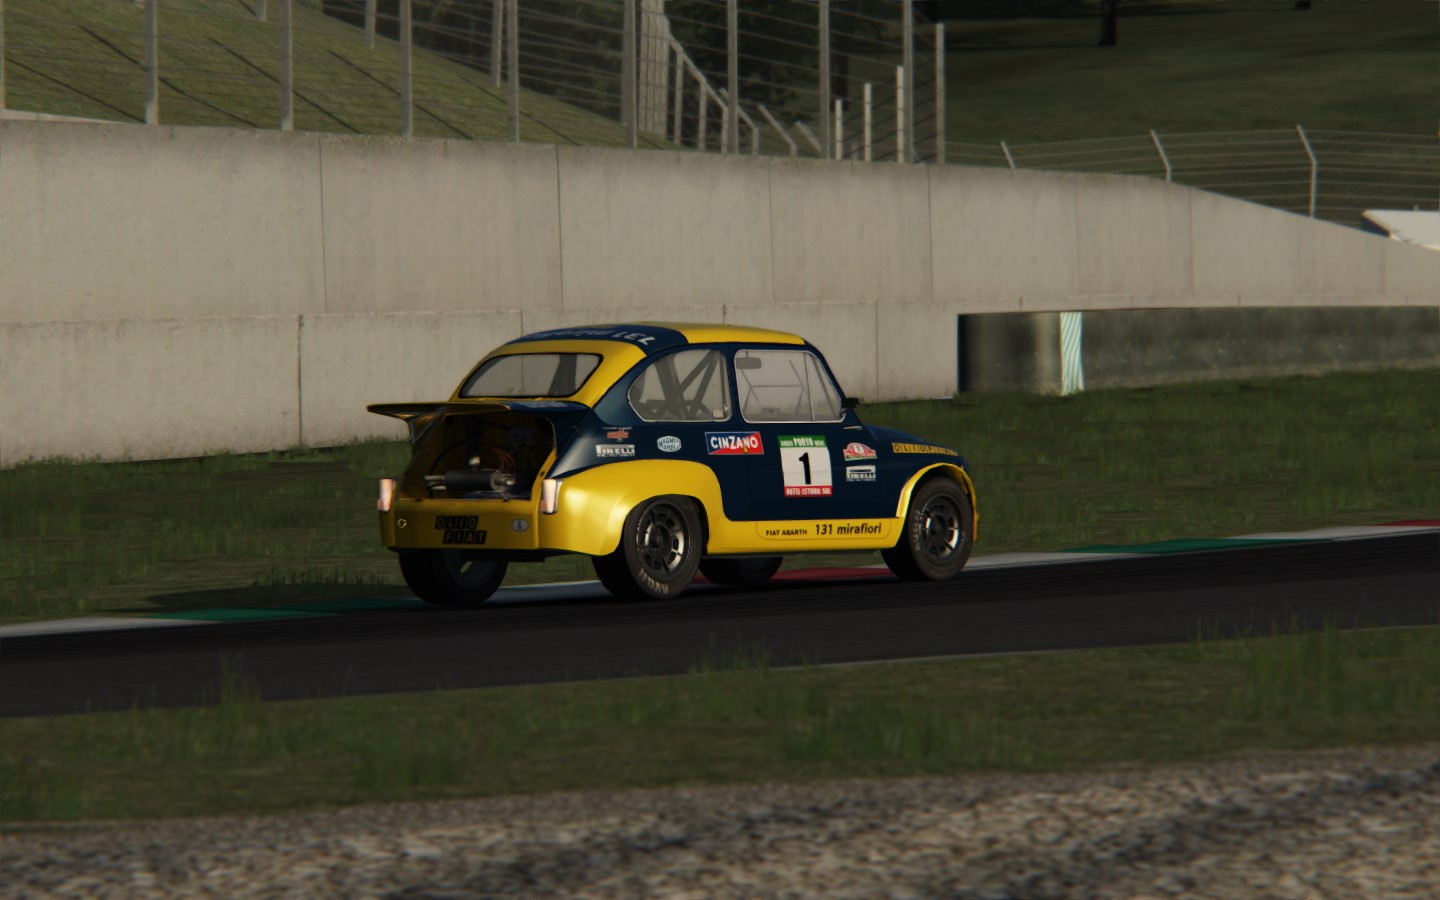 Screenshot_abarth_1000tc_mugello_22-1-116-23-13-44.jpg